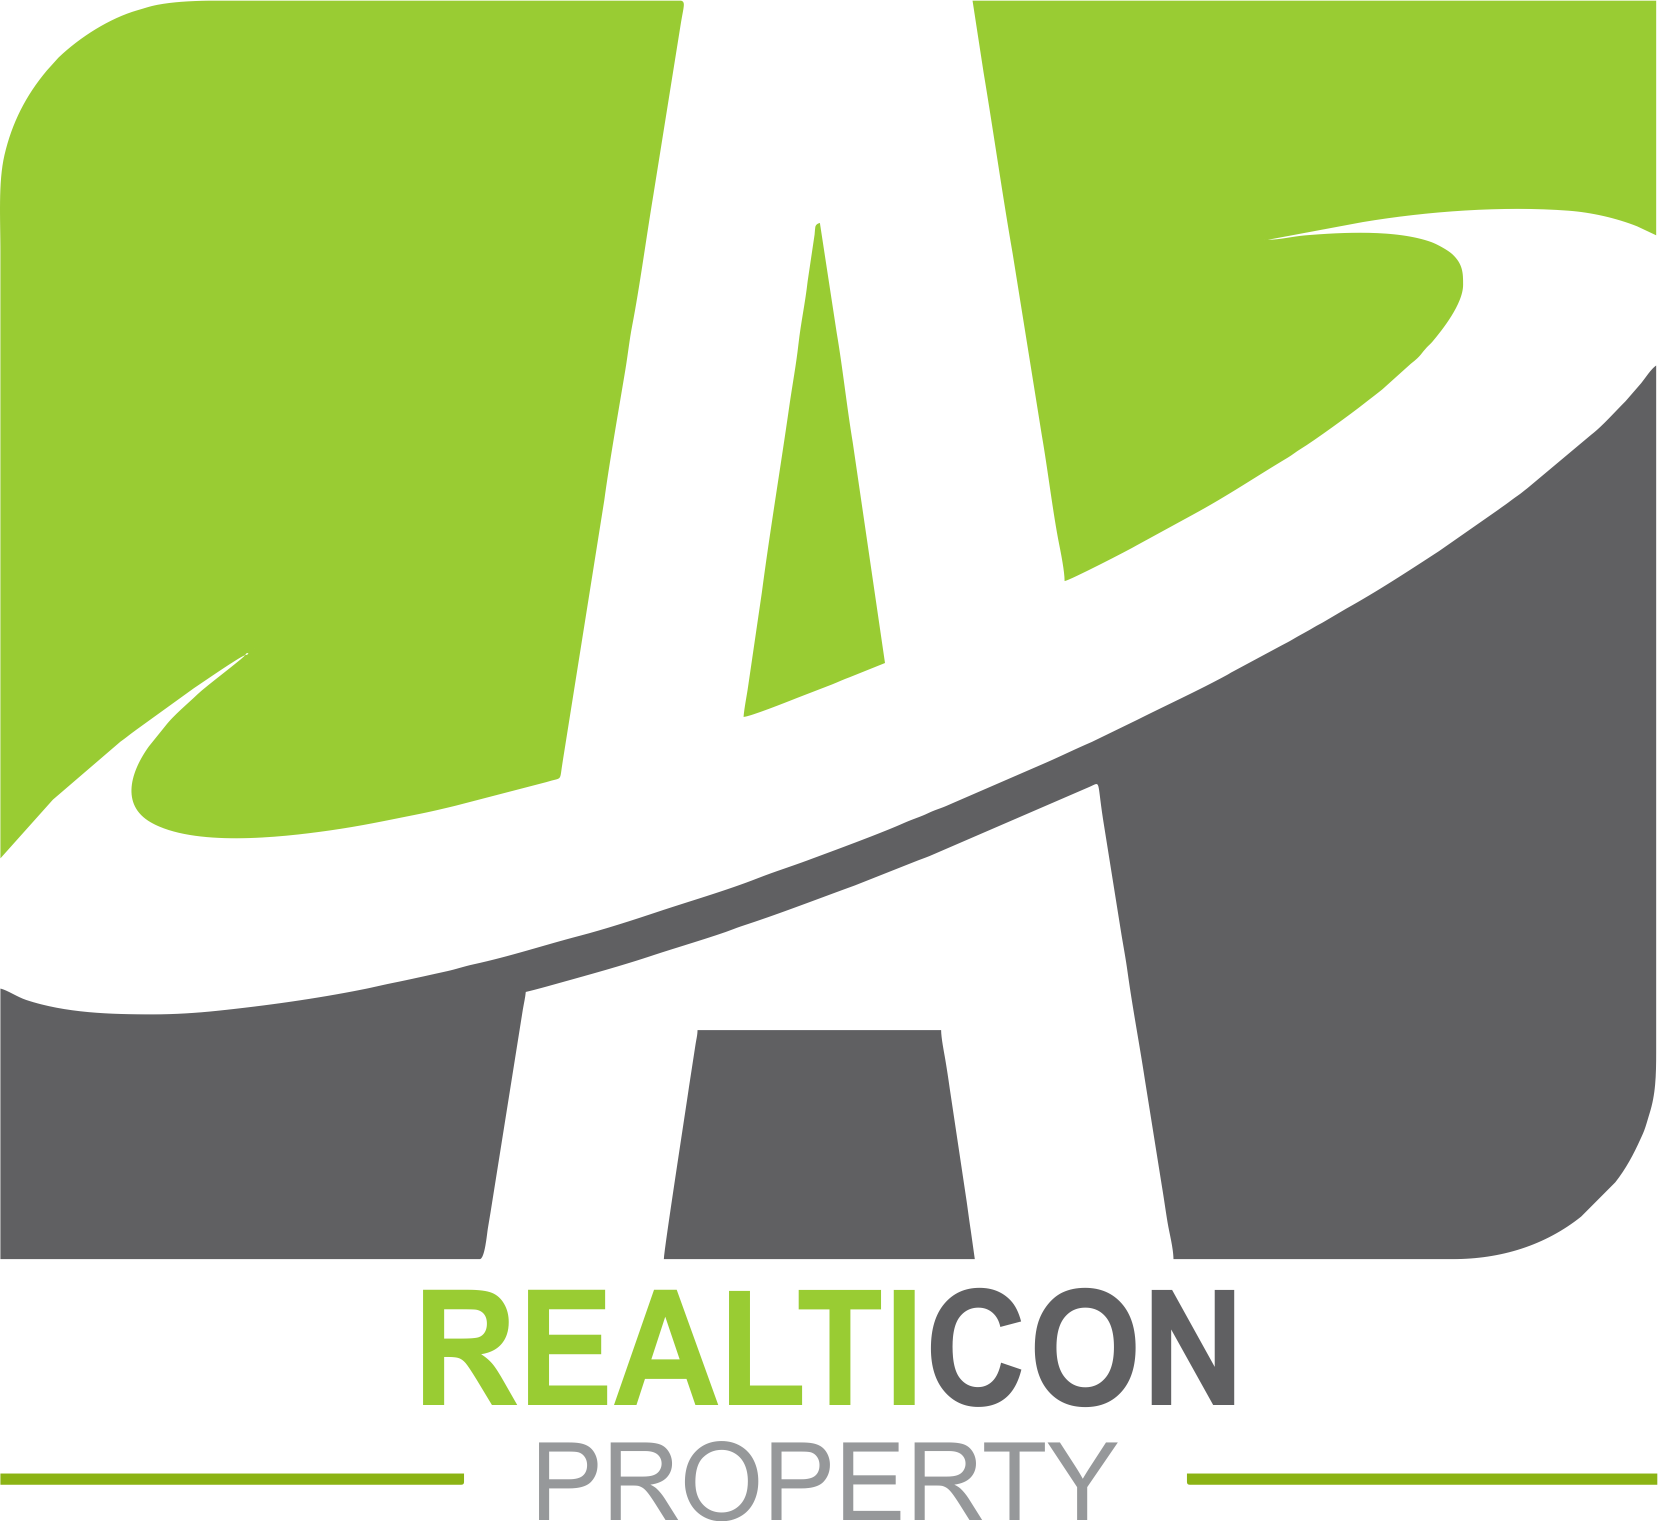 Realticon is a Property Management division that is dedicated to maximizing each and every Client's property potential in an informed and efficient manner.